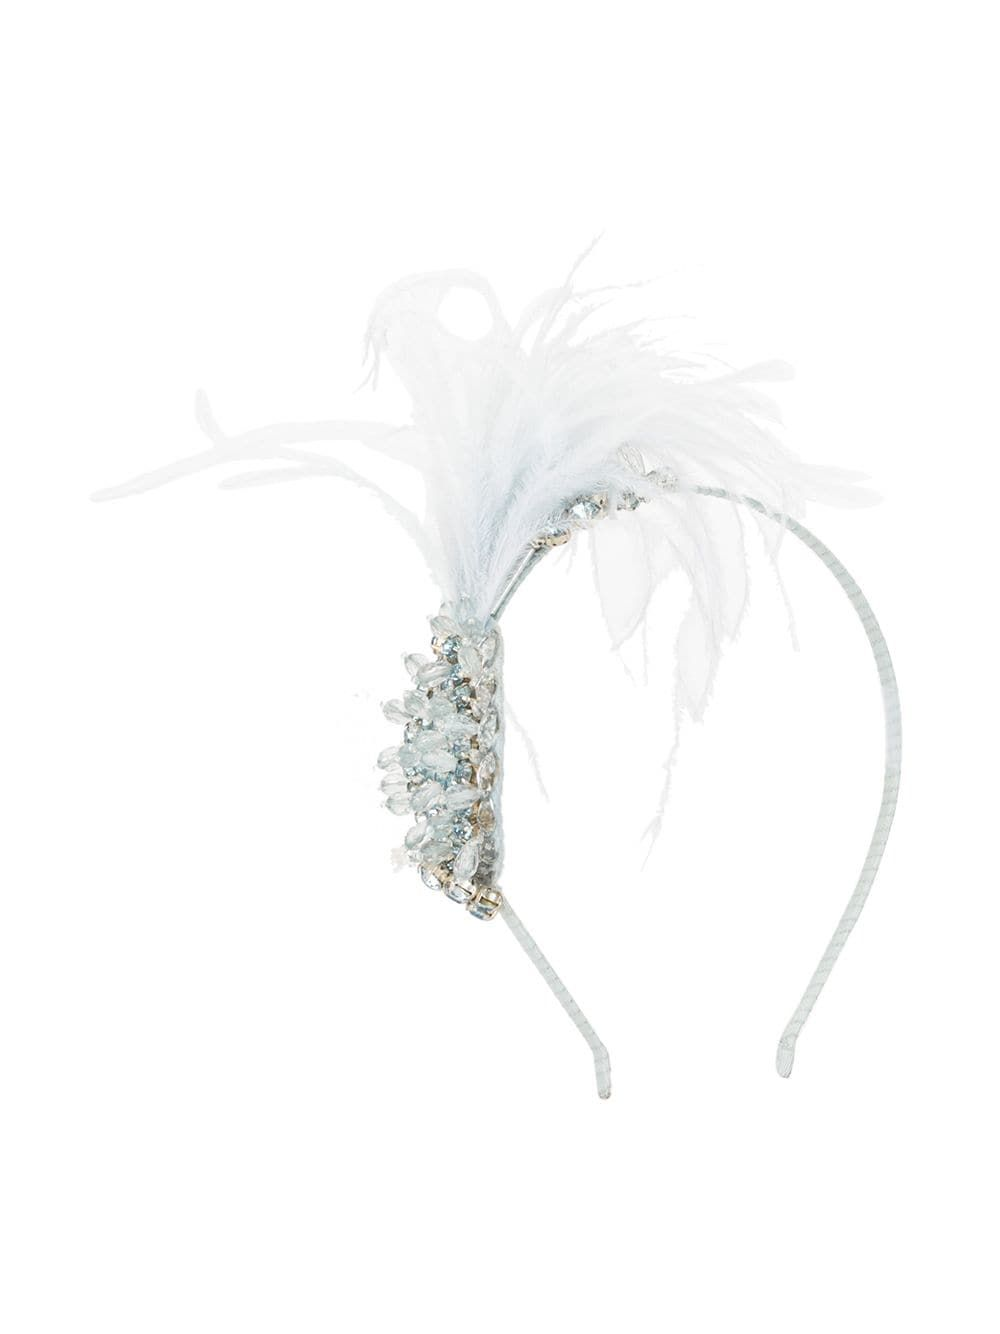 Seafoam blue Birds Of Feather headband from TUTU DU MONDE featuring feather detailing and crystal embellishment.